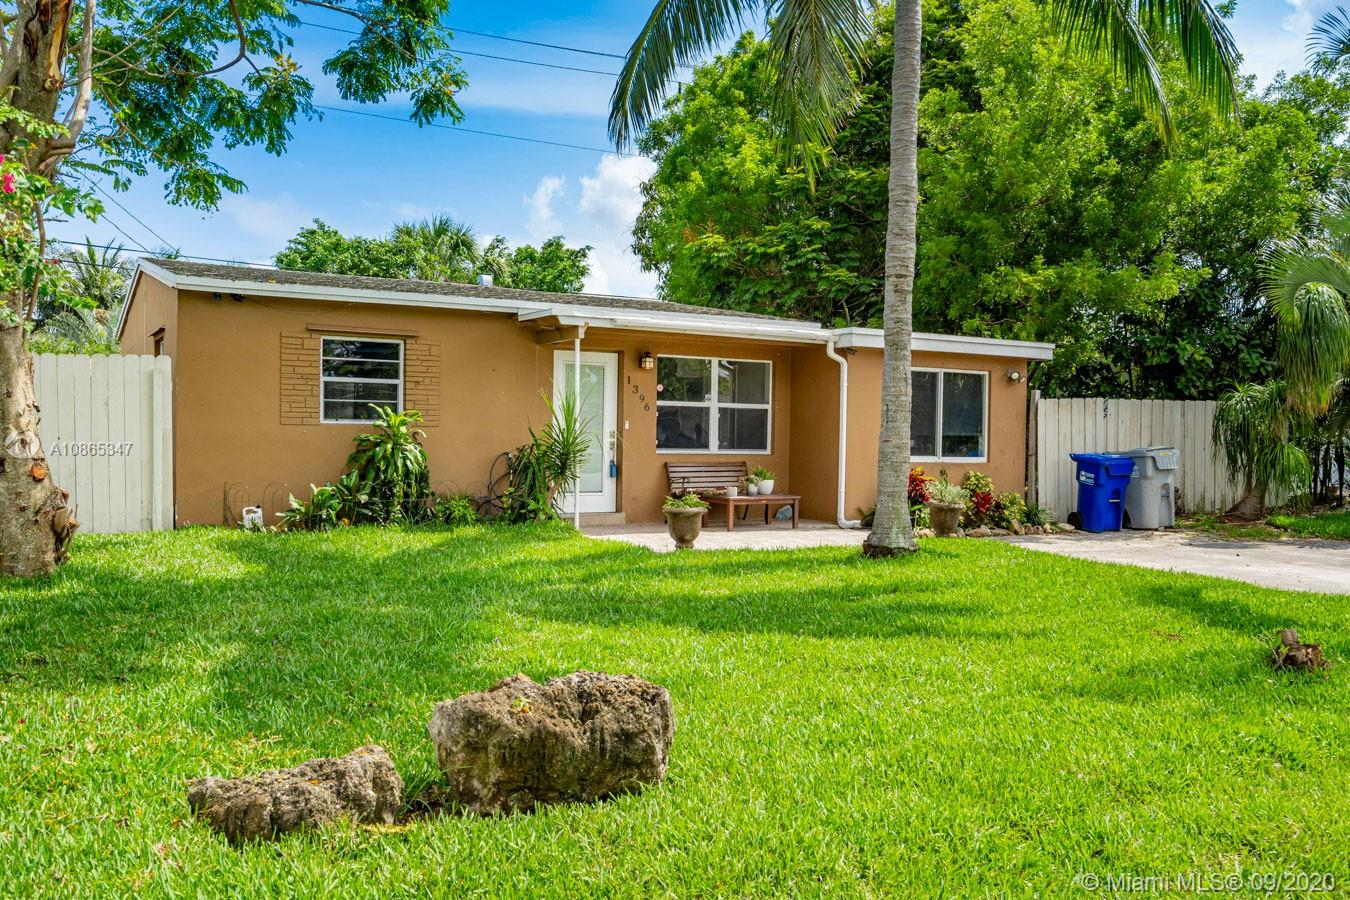 Details for 1396 25th Ct, Pompano Beach, FL 33064